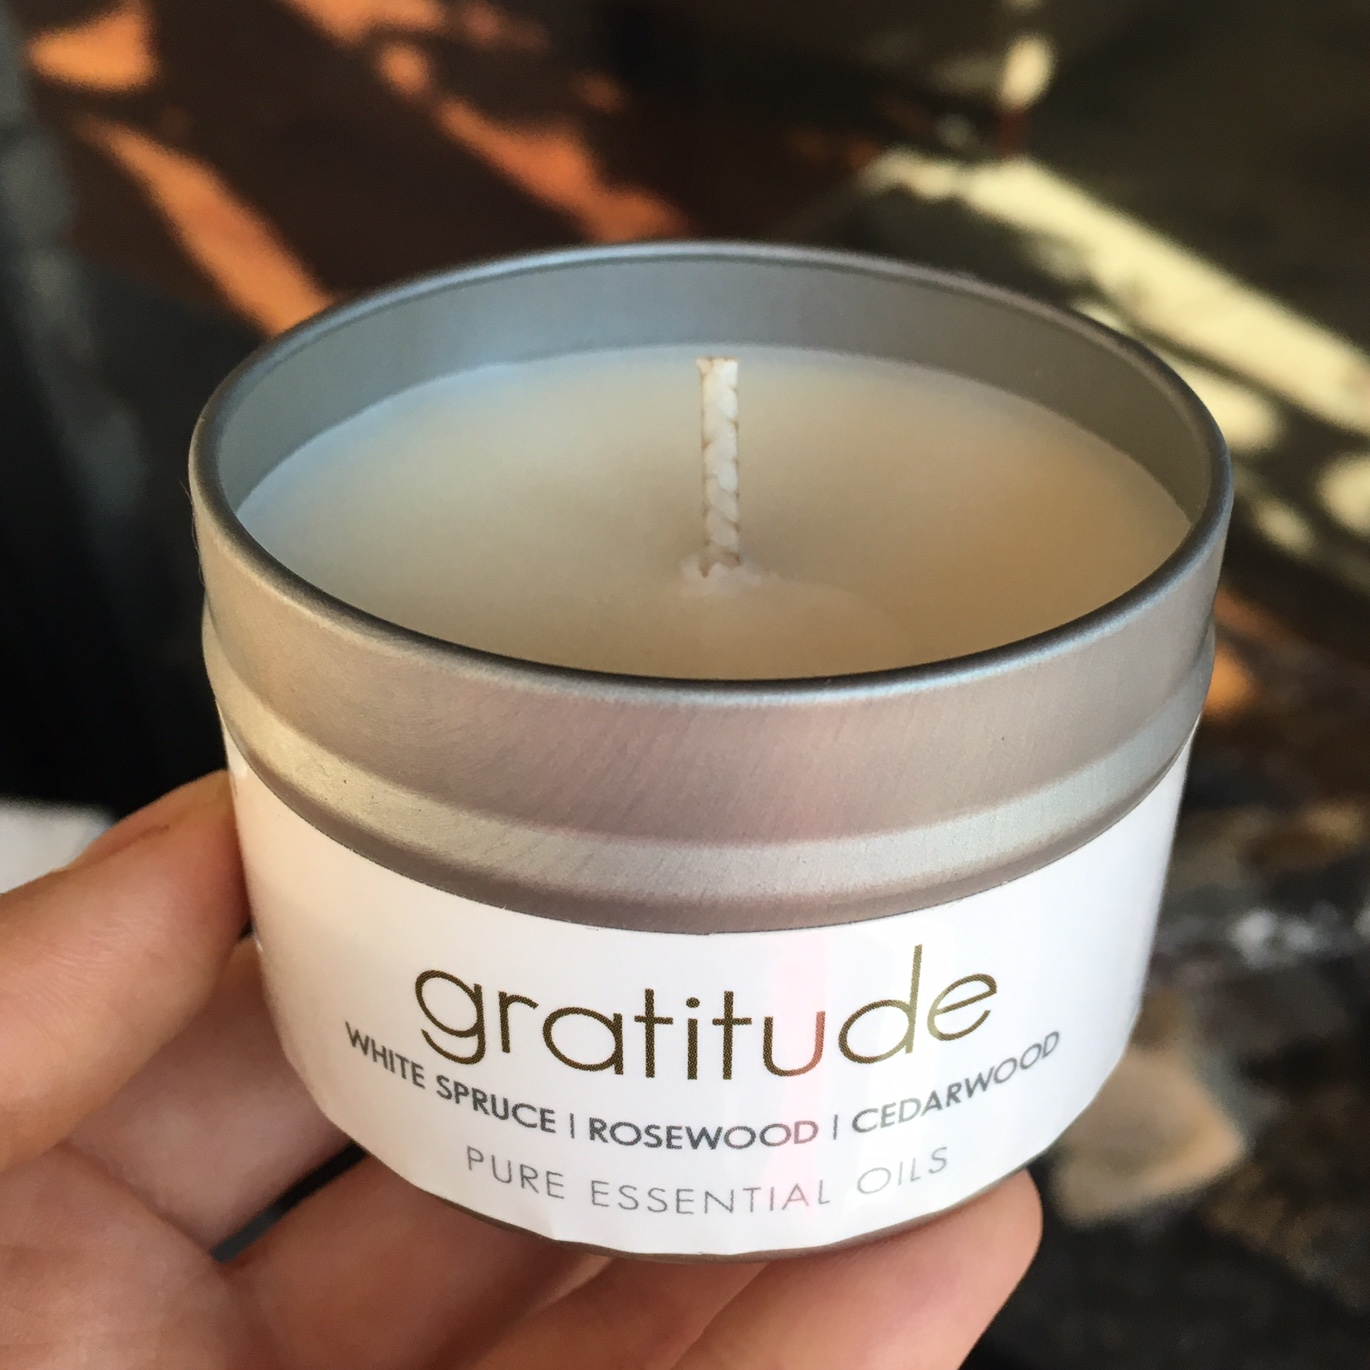 Exquisite Pure Candle Pany Pure Candle Company Image Candle Pure Integrity Candles Uk Pure Integrity Candles Coupon Code houzz-03 Pure Integrity Candles